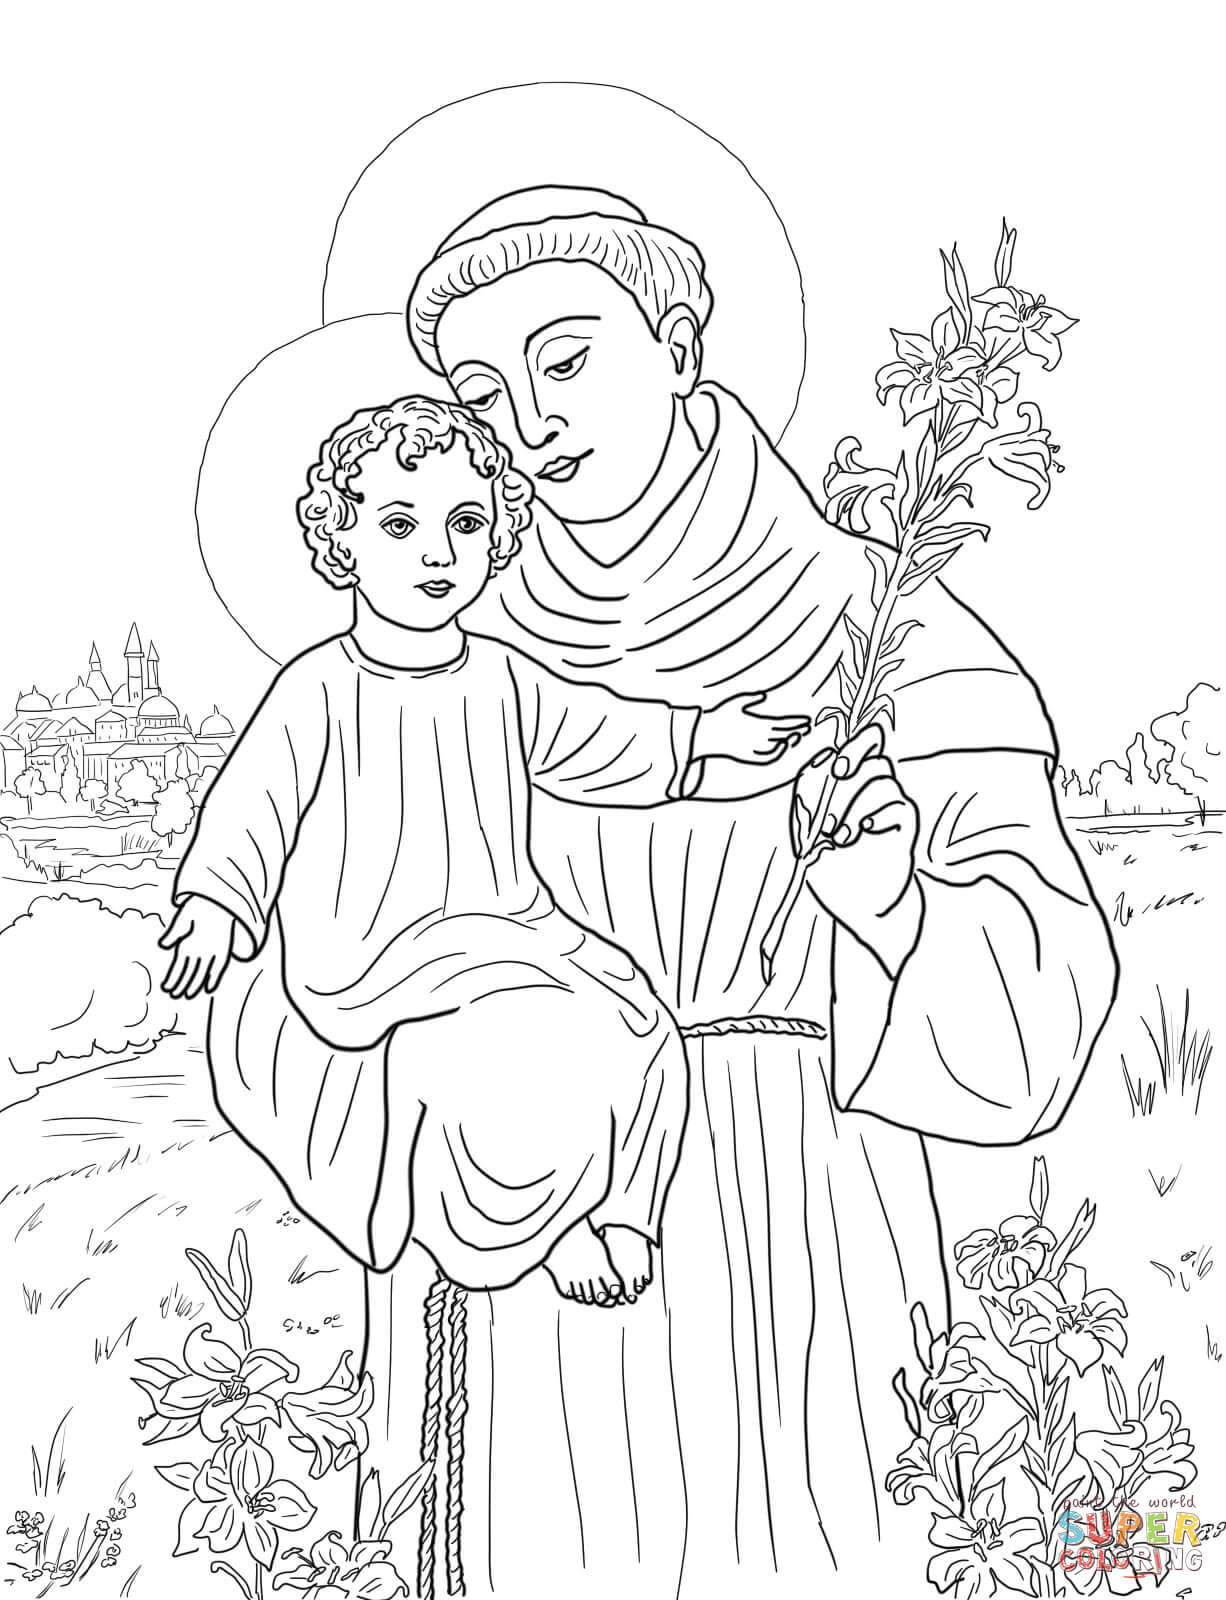 paul and timothy coloring pages - photo#5